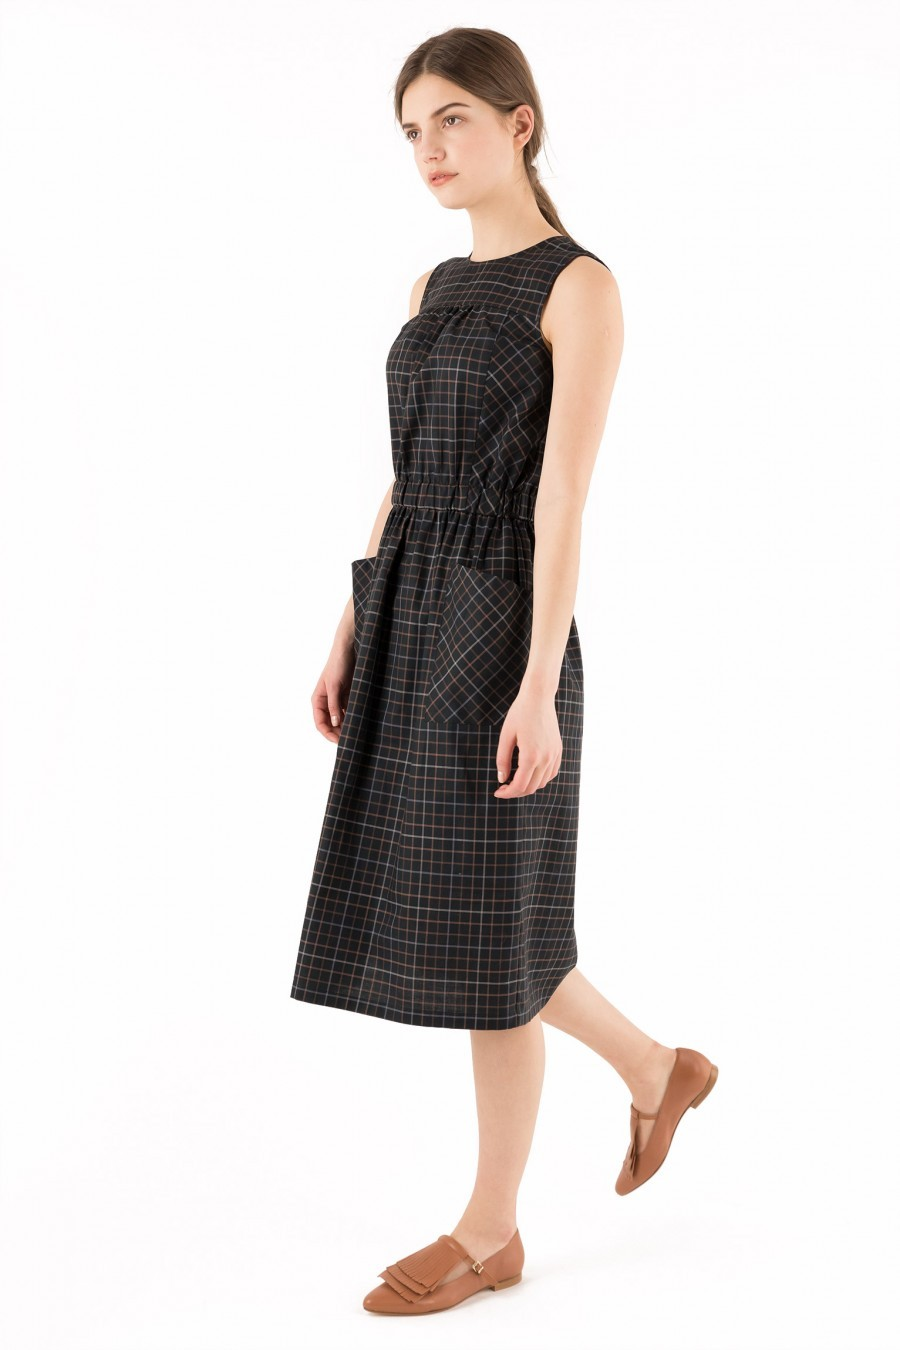 black tartan dress with pockets Lazzari